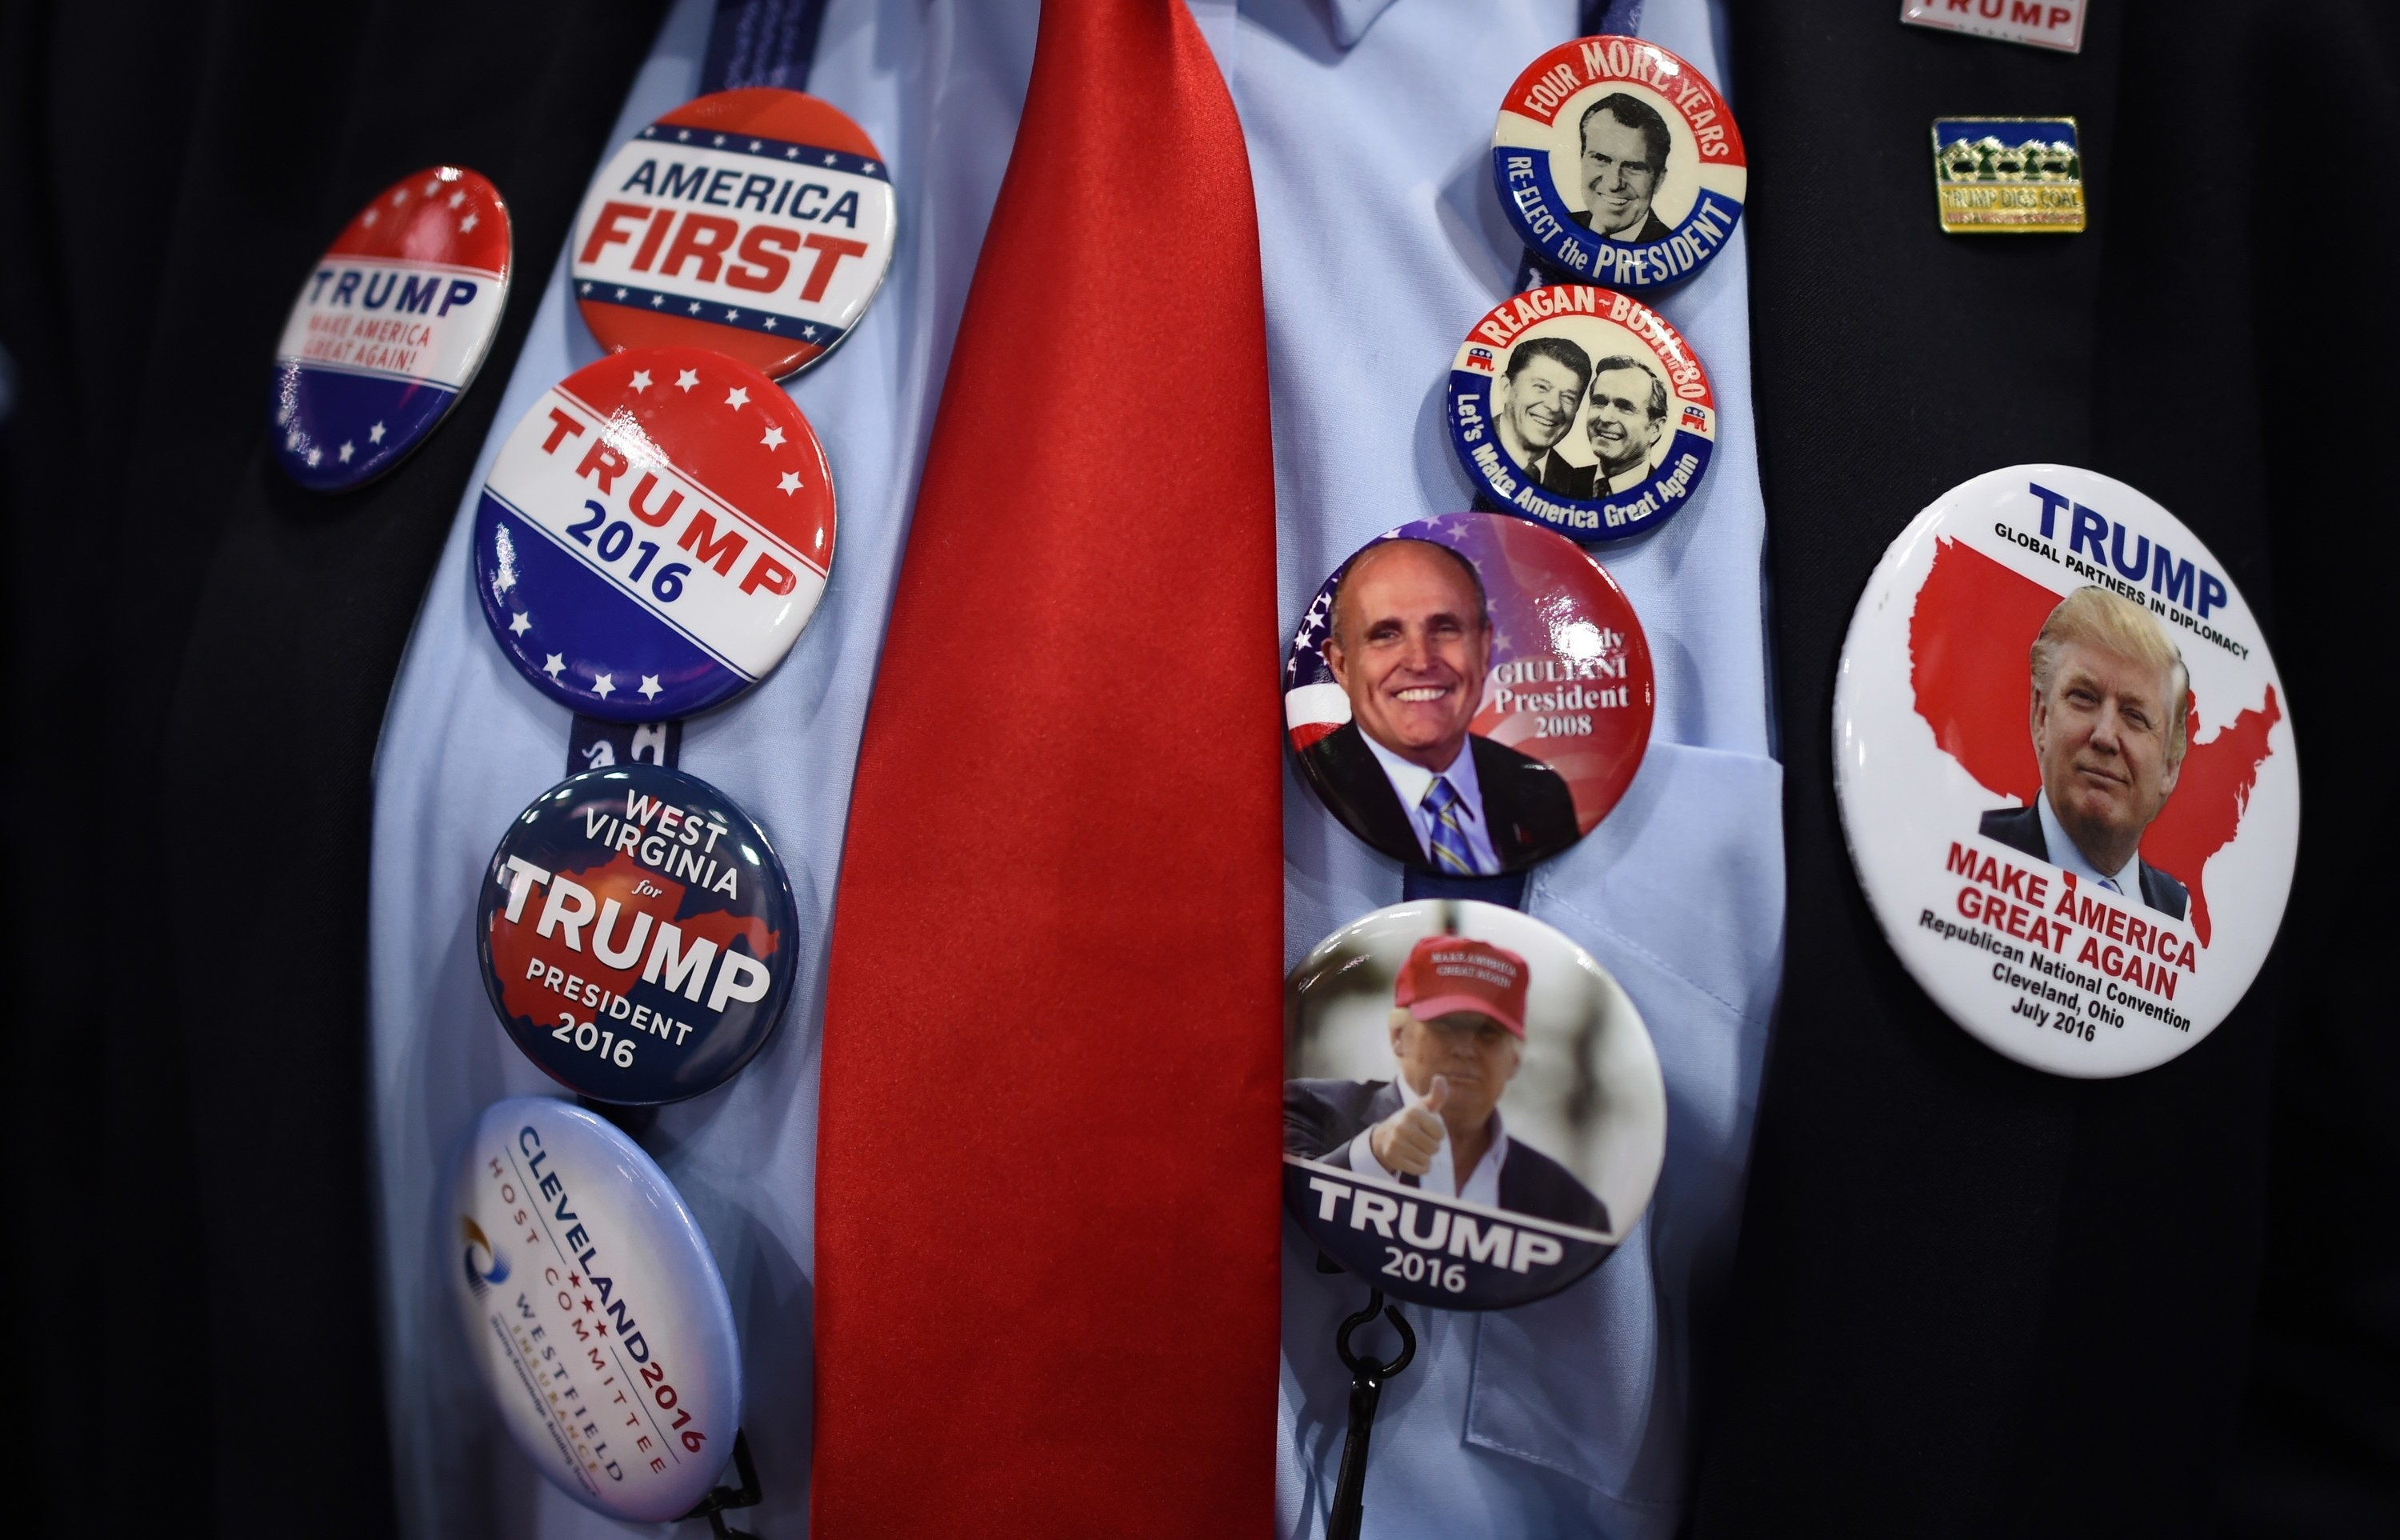 Buttons that say America First and Trump